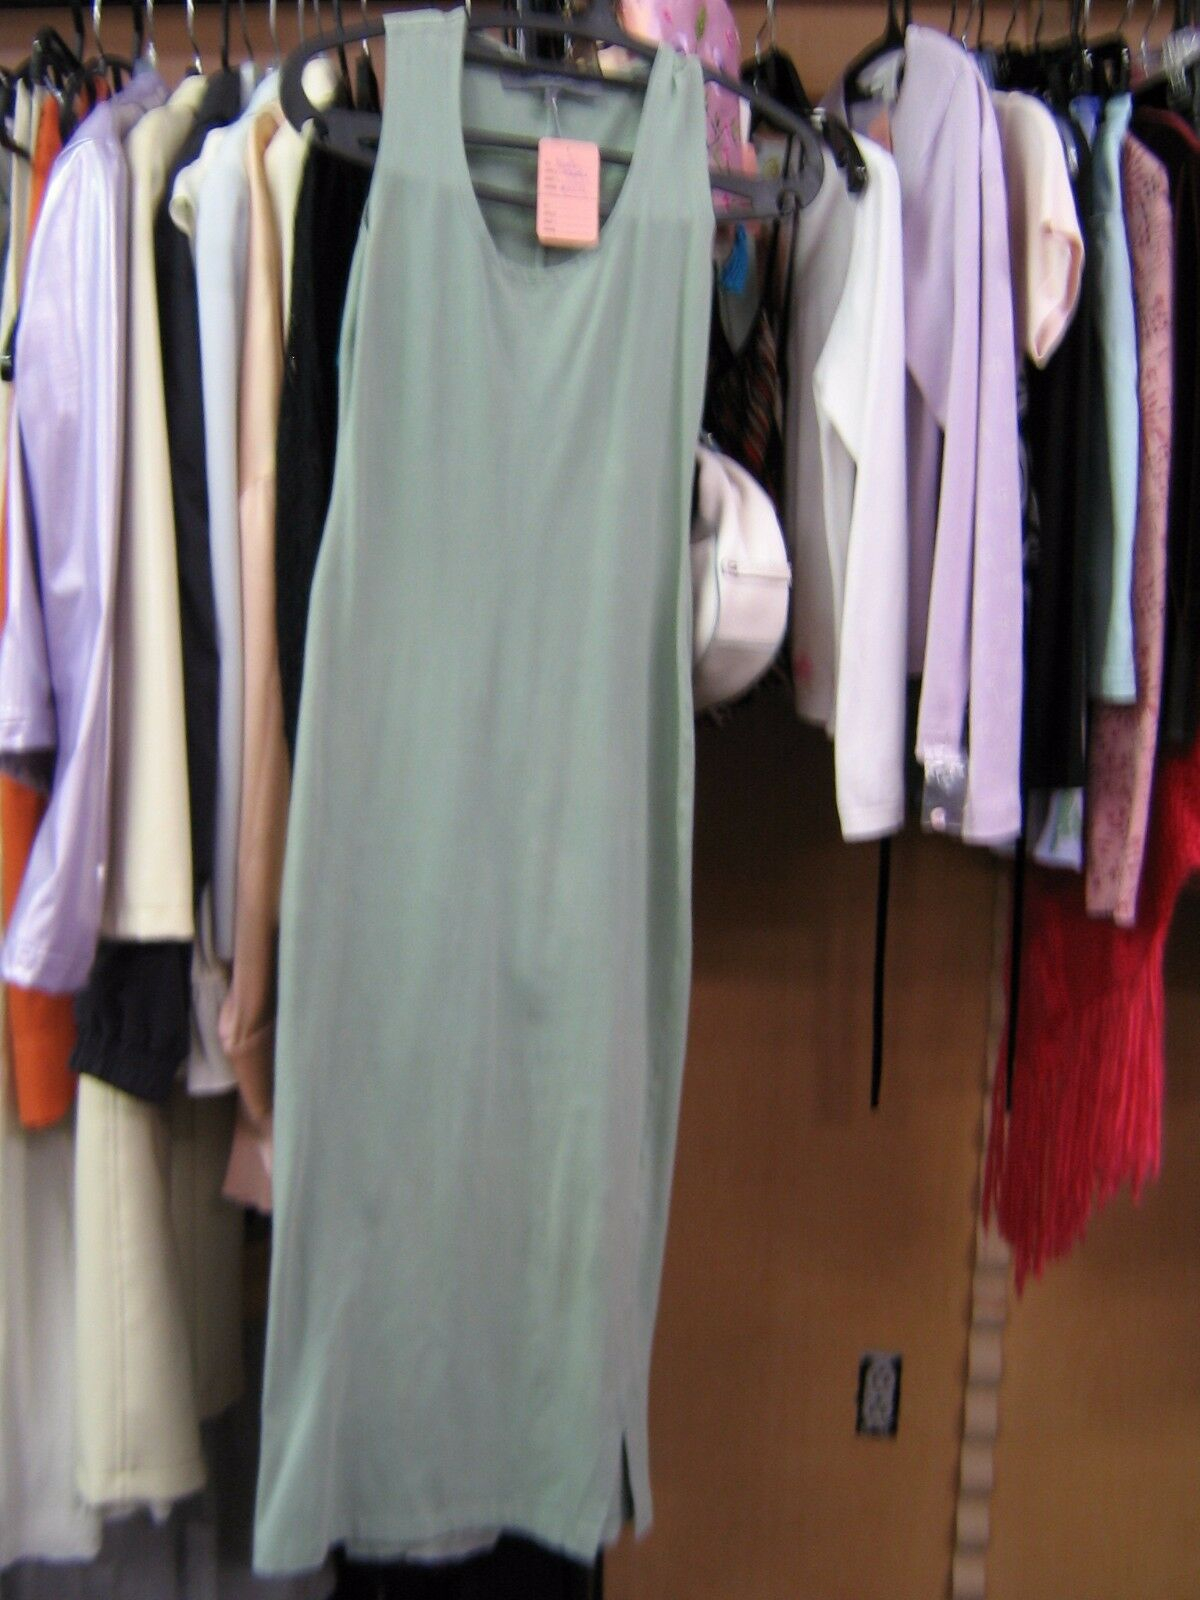 Marla Maples personally owned mint sleeveless summer dress.